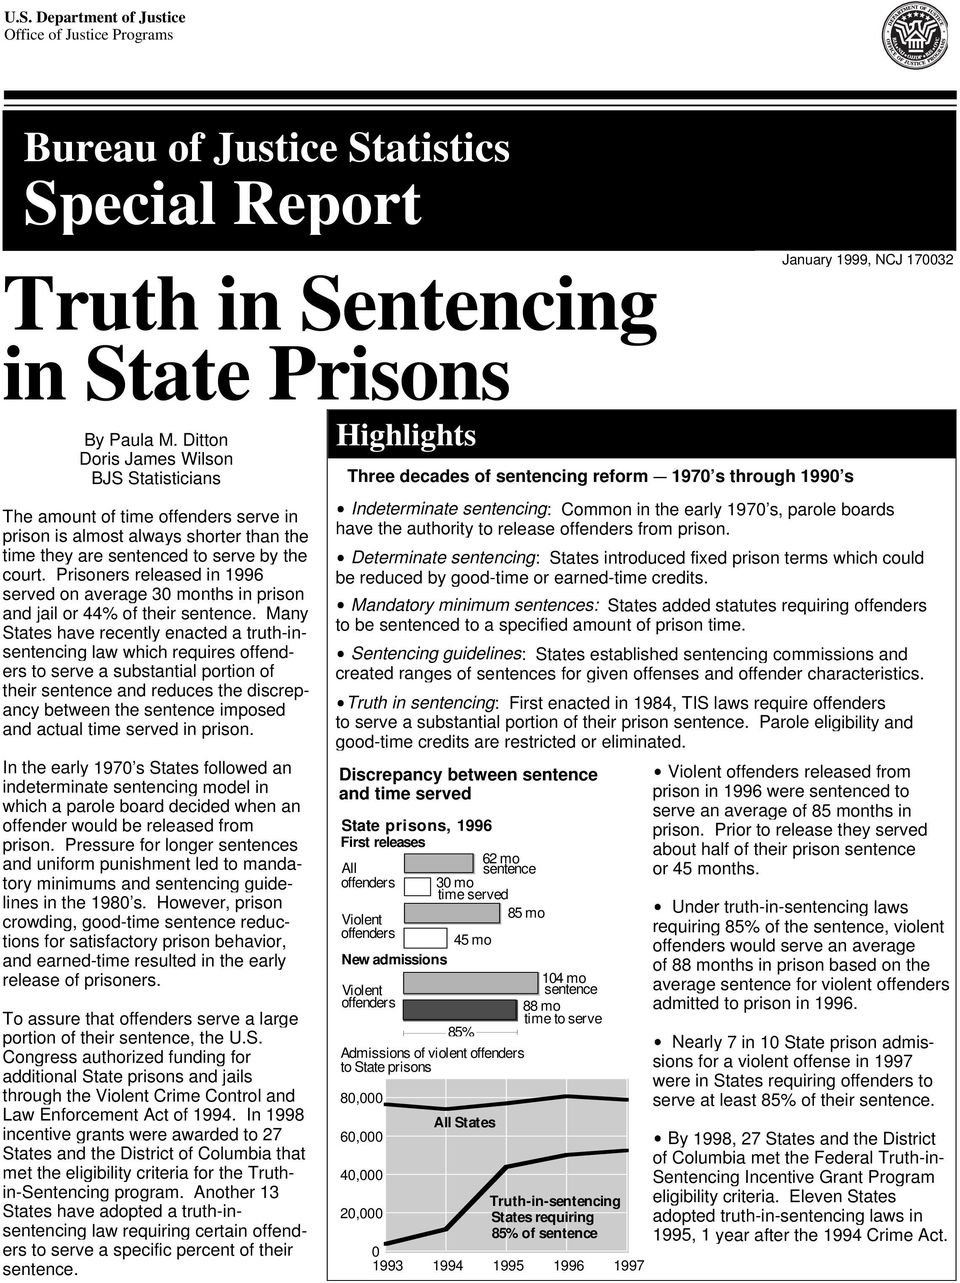 Prisoners released in 96 served on average 30 months in prison and jail or 44% of their sentence.